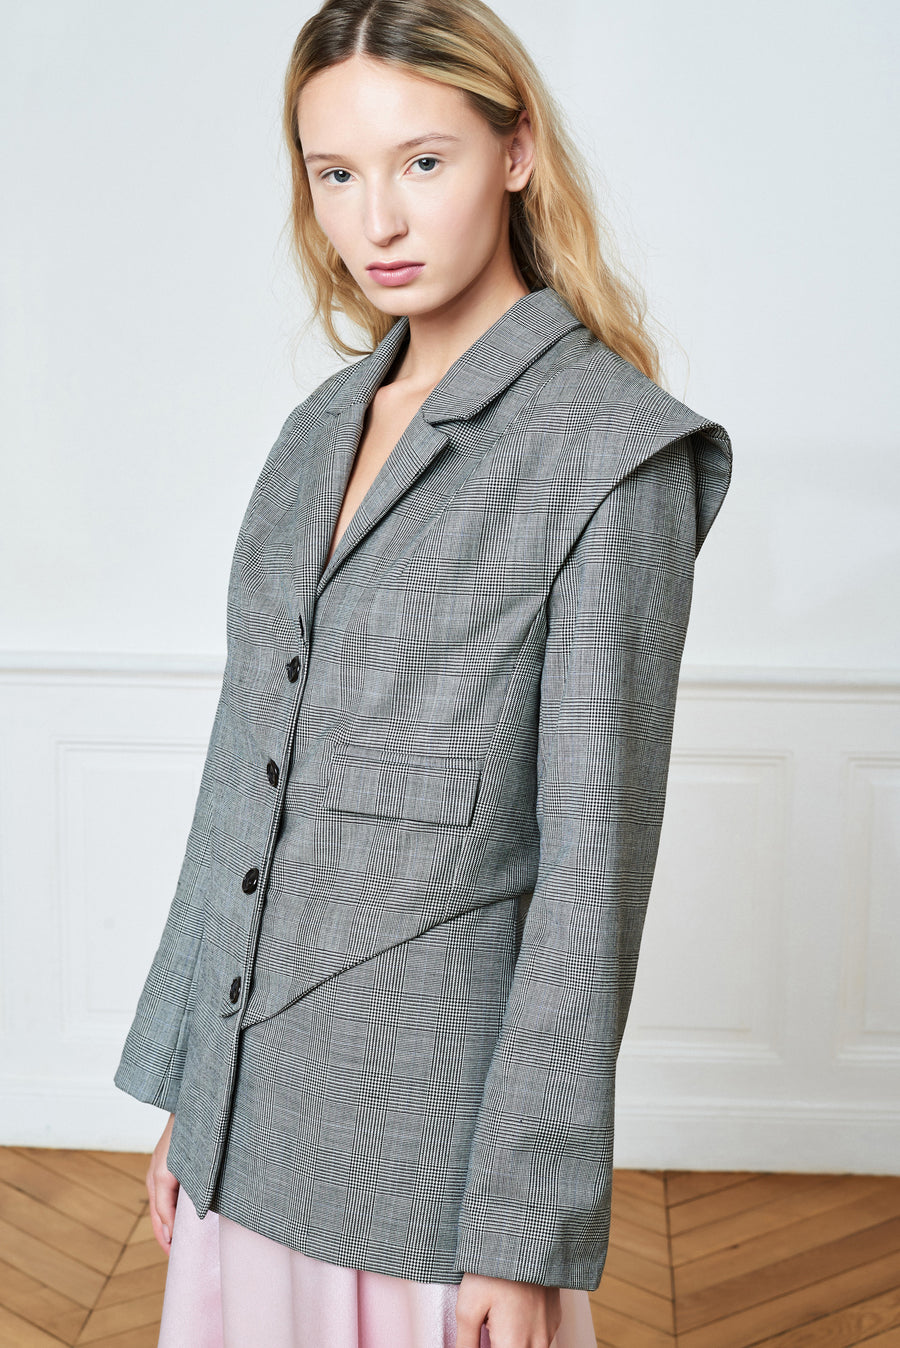 Double layered tailored blazer